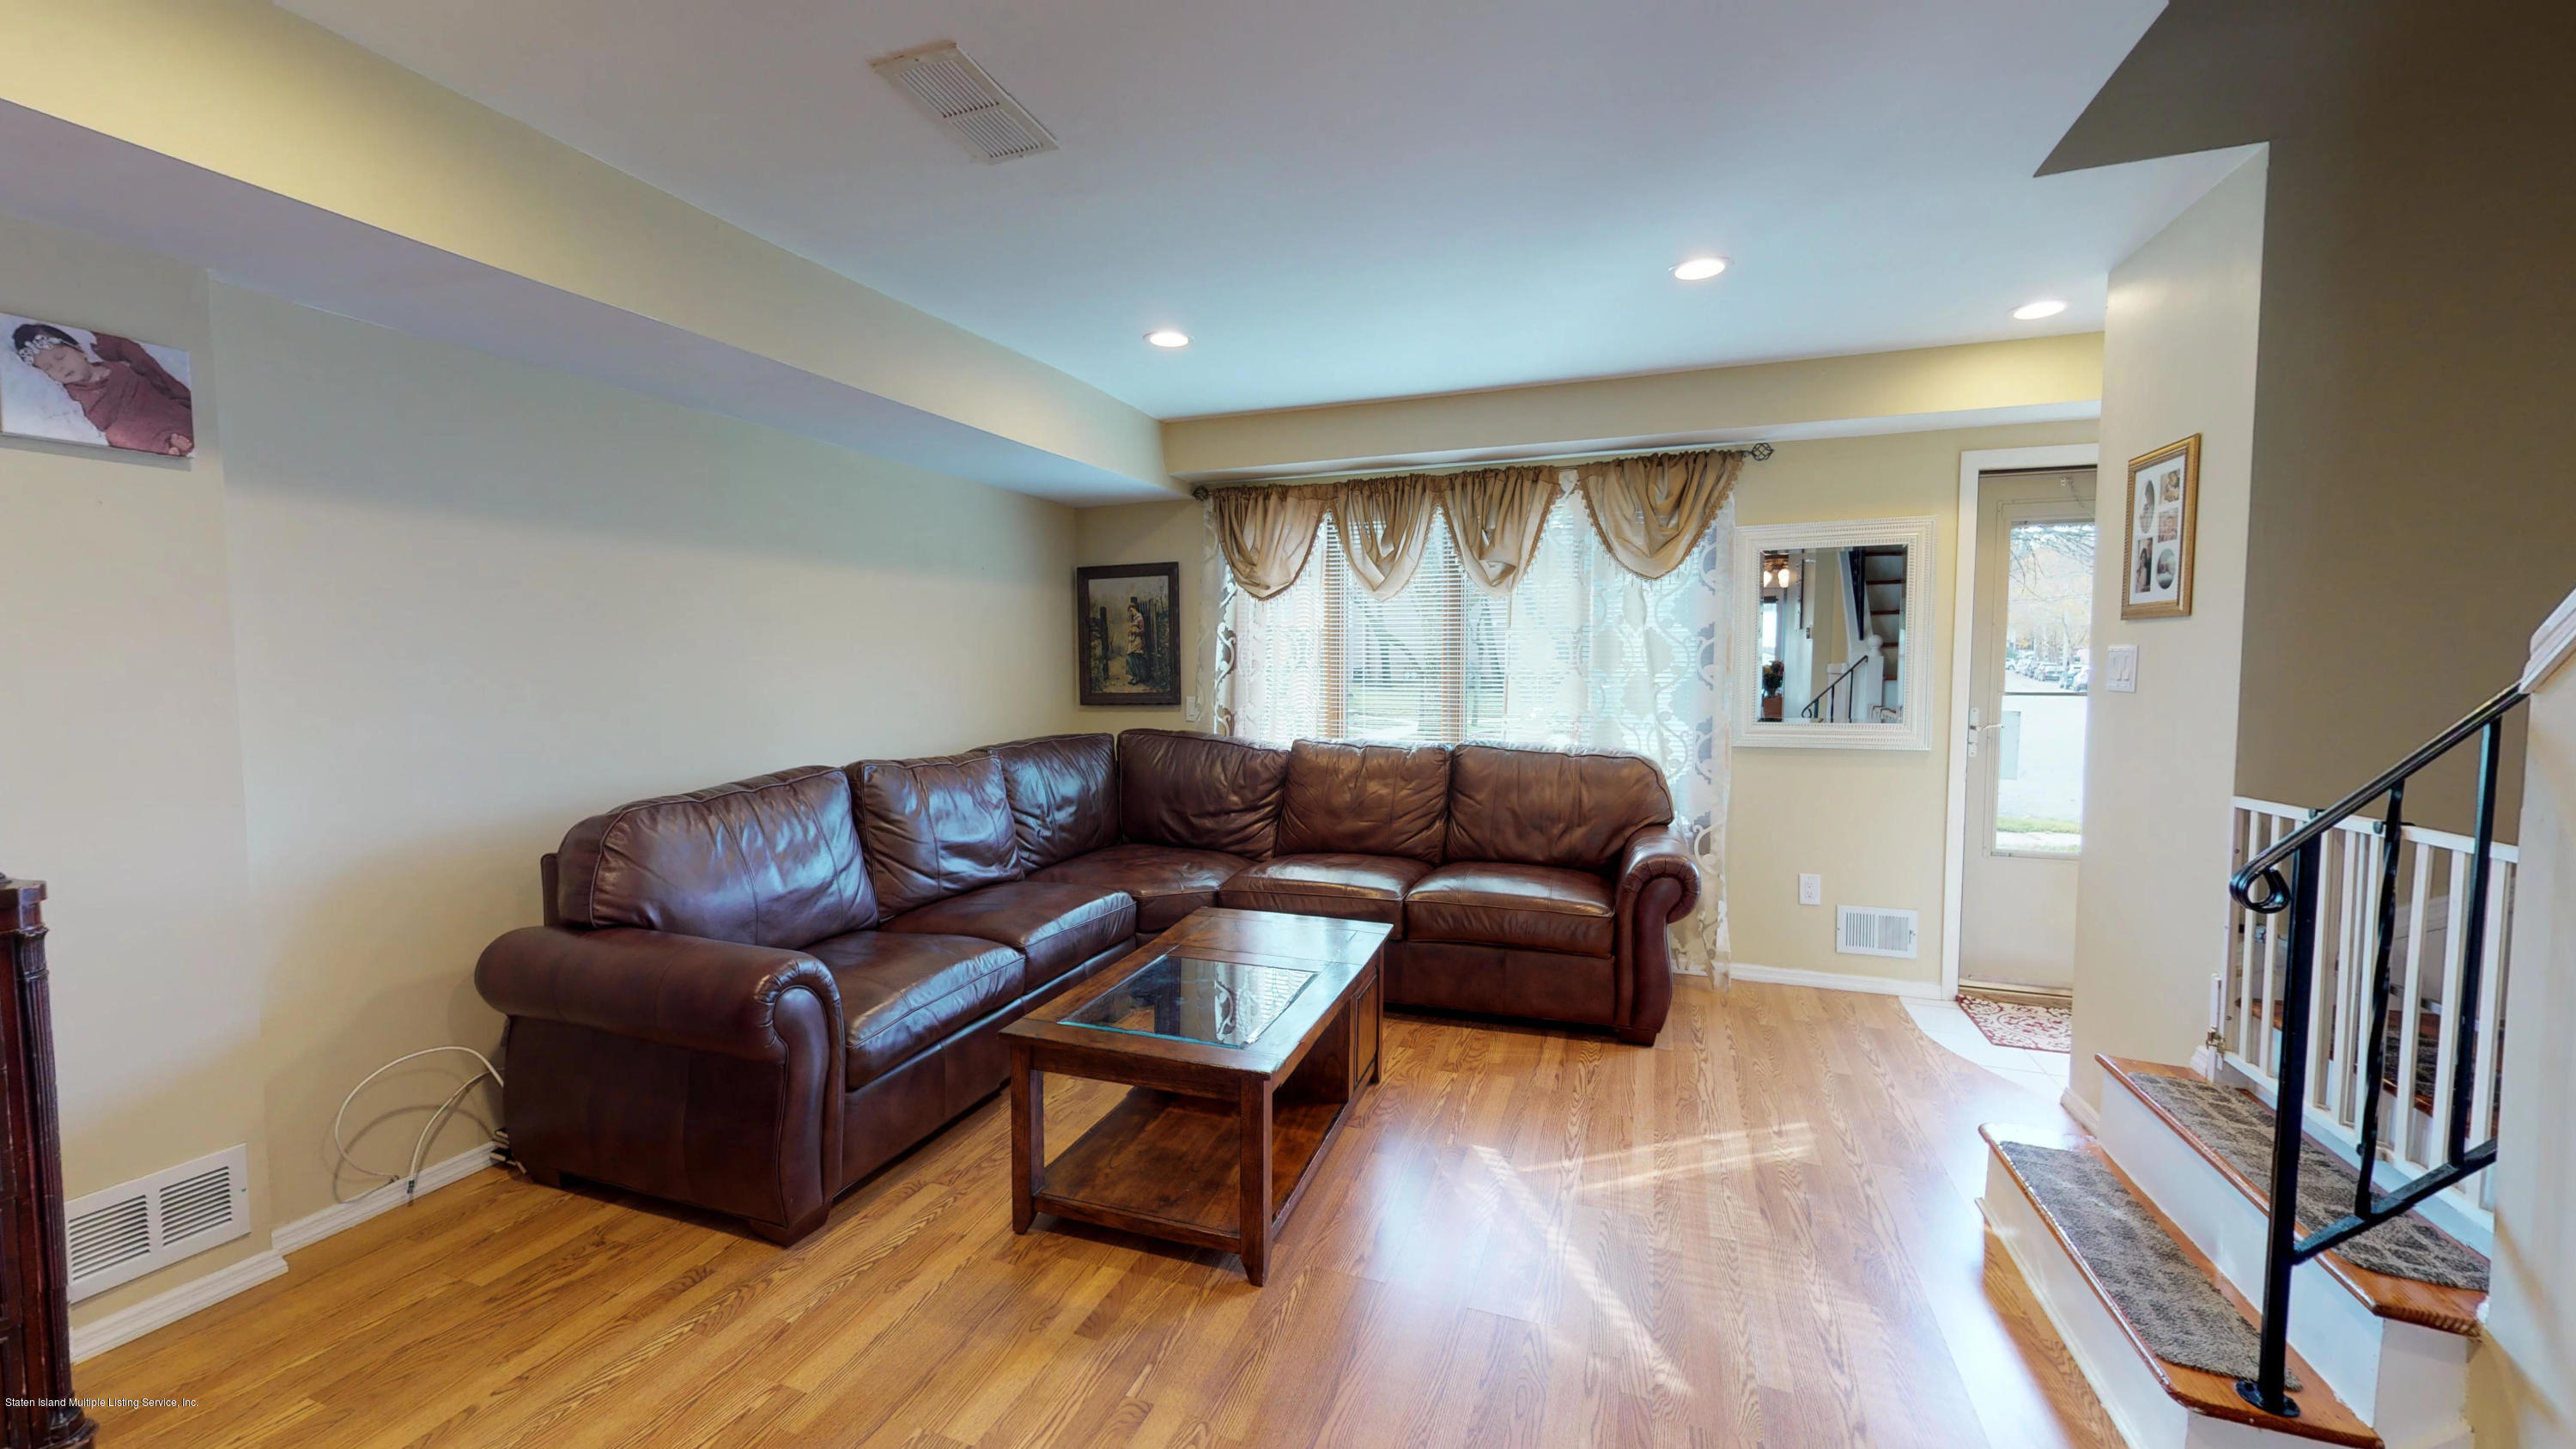 Single Family - Attached 69 Bunnell Court  Staten Island, NY 10312, MLS-1124106-4